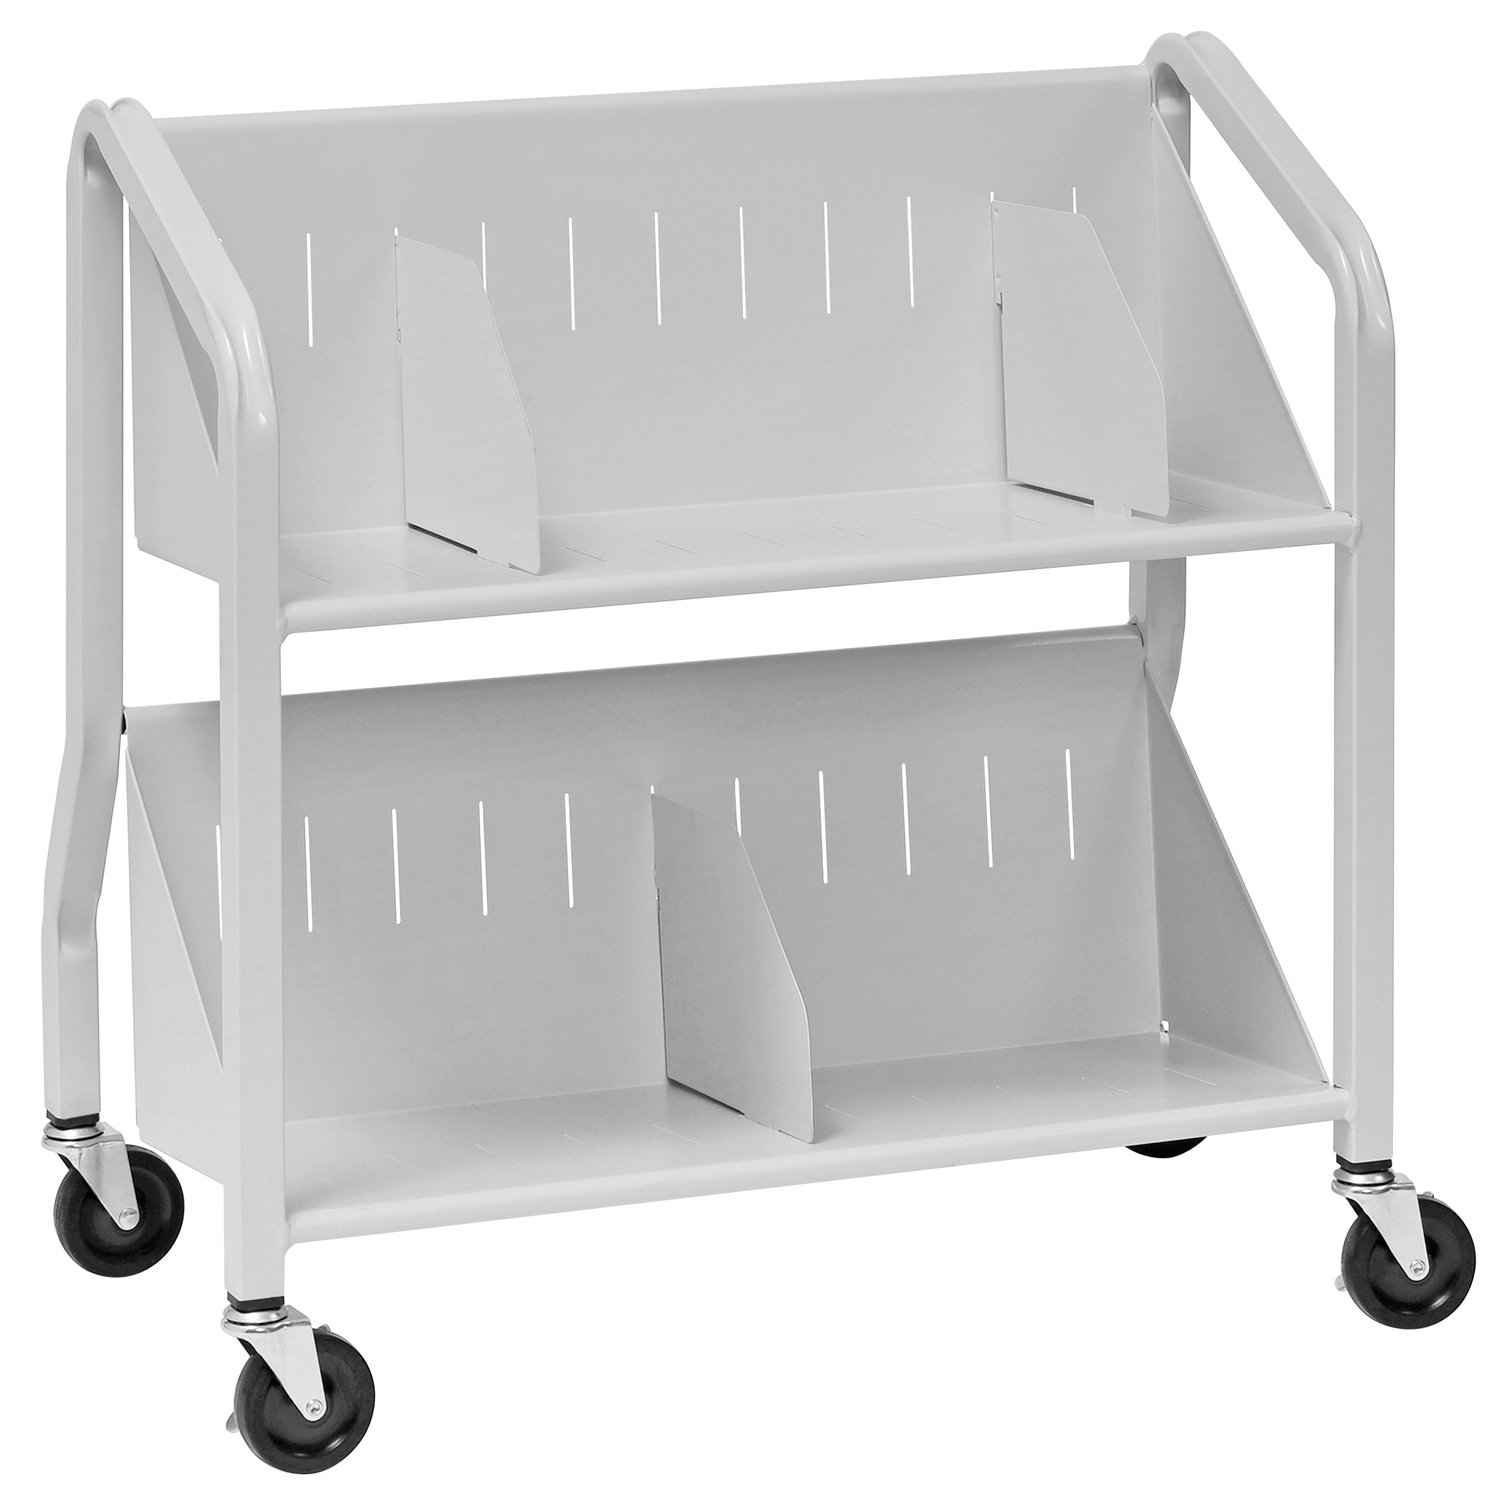 Buddy Products Two-Shelf Sloped Book Cart with Dividers, 15 x 27 x 29 Inches, Platinum (5413-32) by Buddy Products